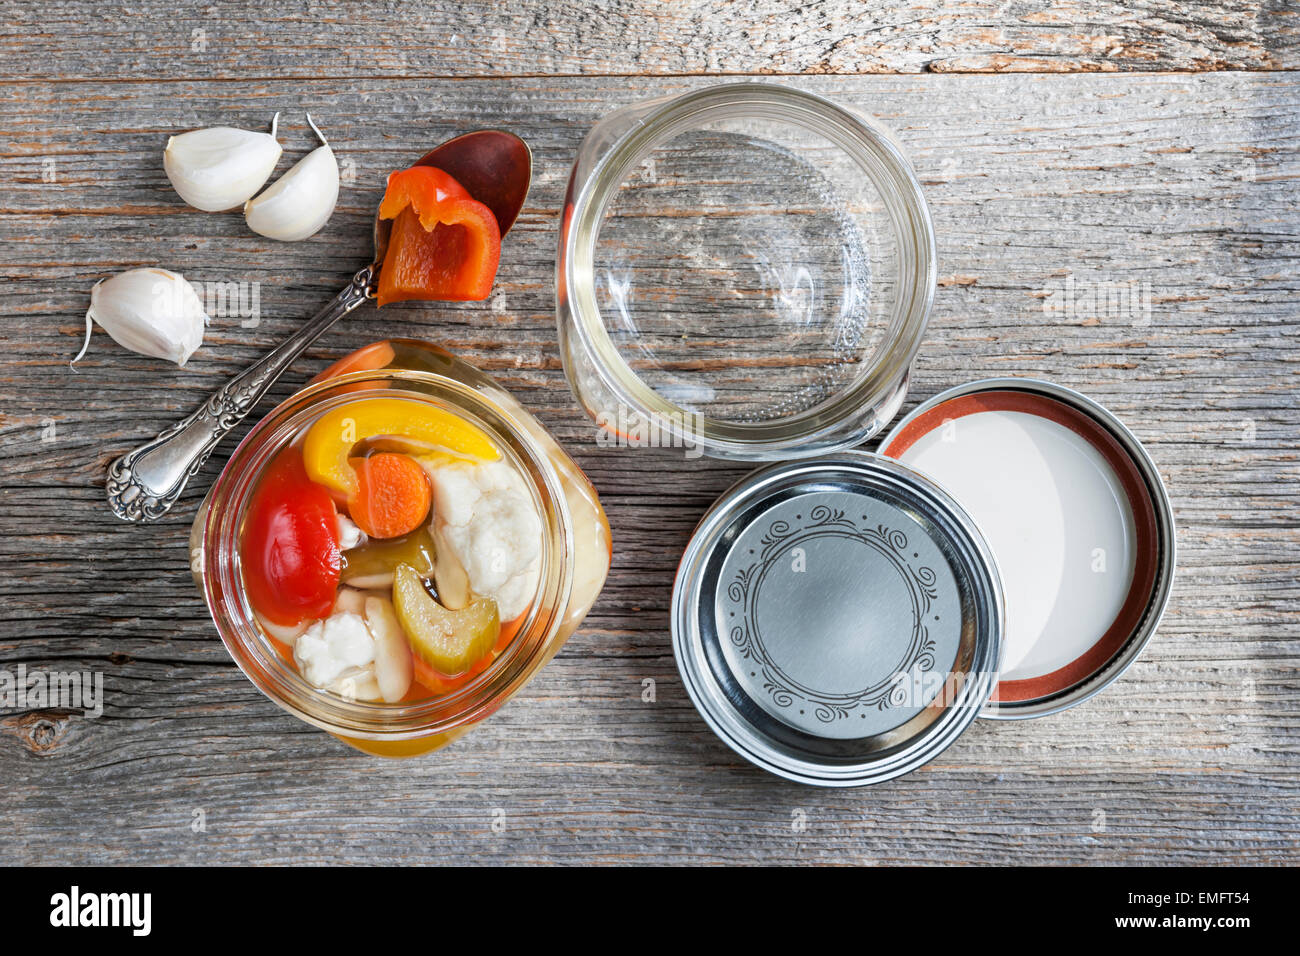 Home preserving mixed vegetables by pickling in glass canning jars - Stock Image